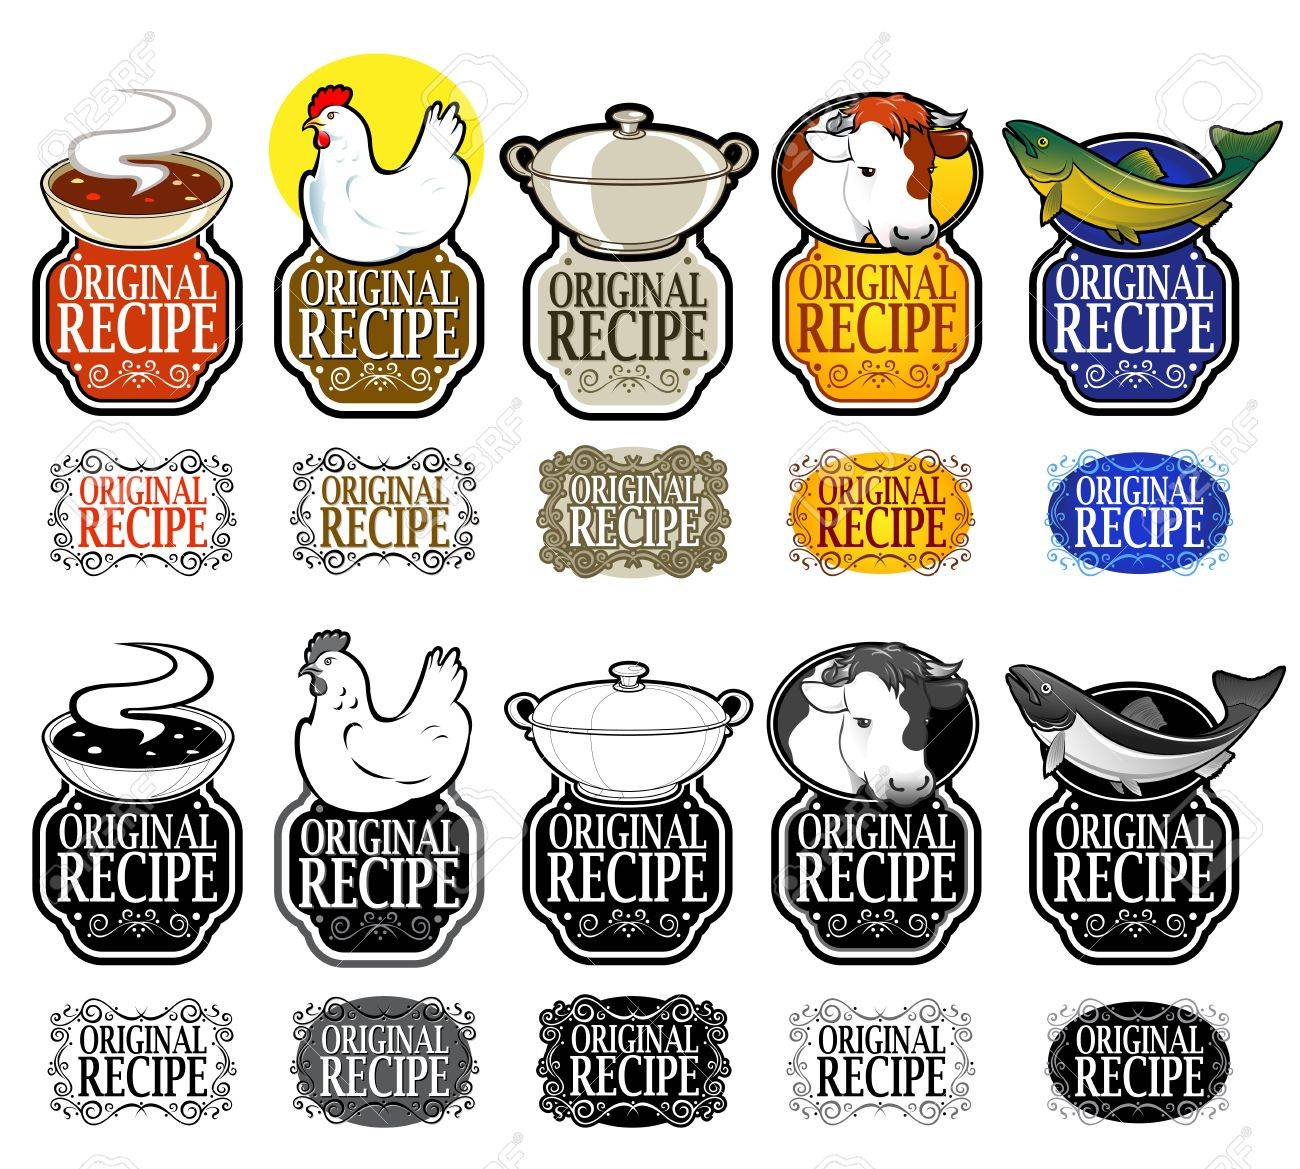 Original Recipe Full Vertical Collection in Color and Black & White Stock Vector - 9674580